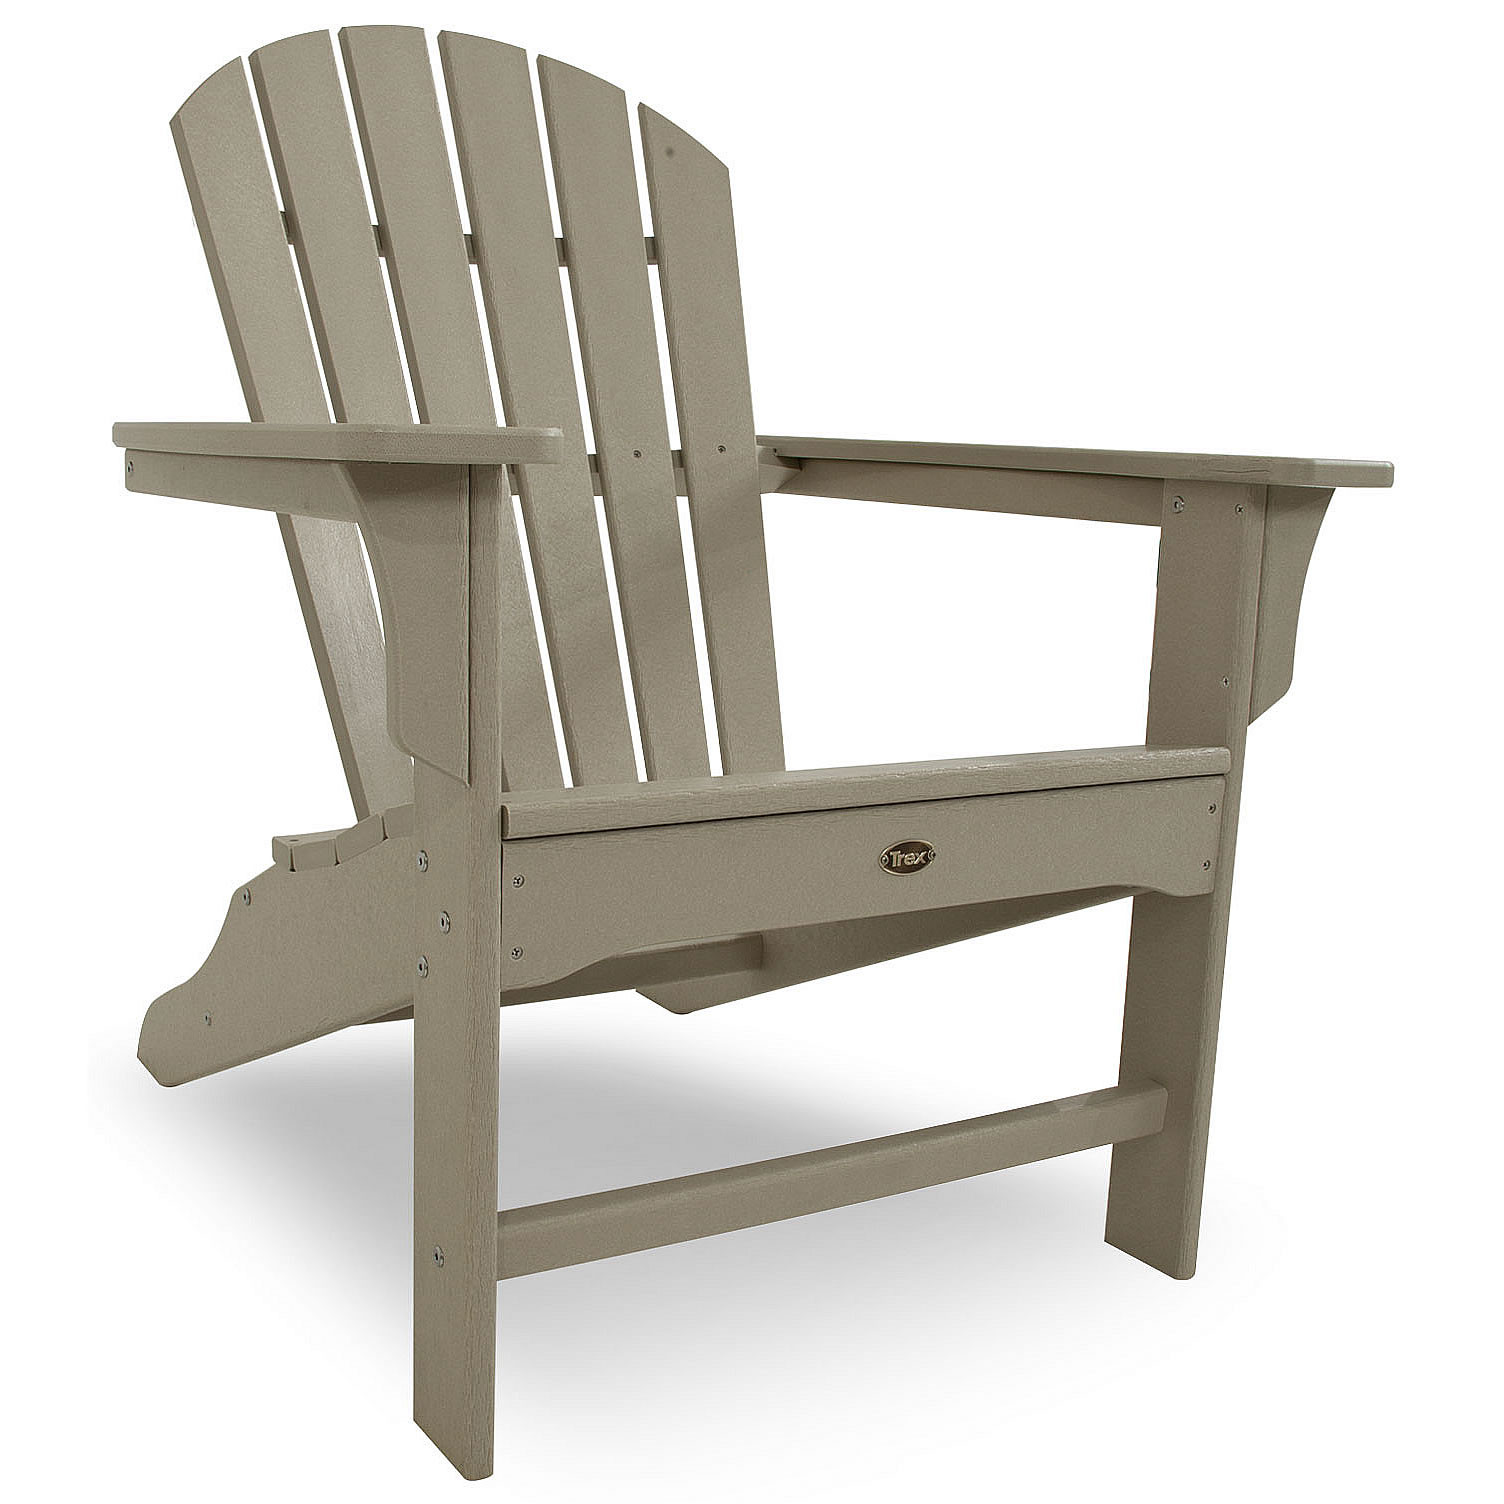 Trex Rocking Chairs Trex Outdoor Furniture Adirondack Chairs